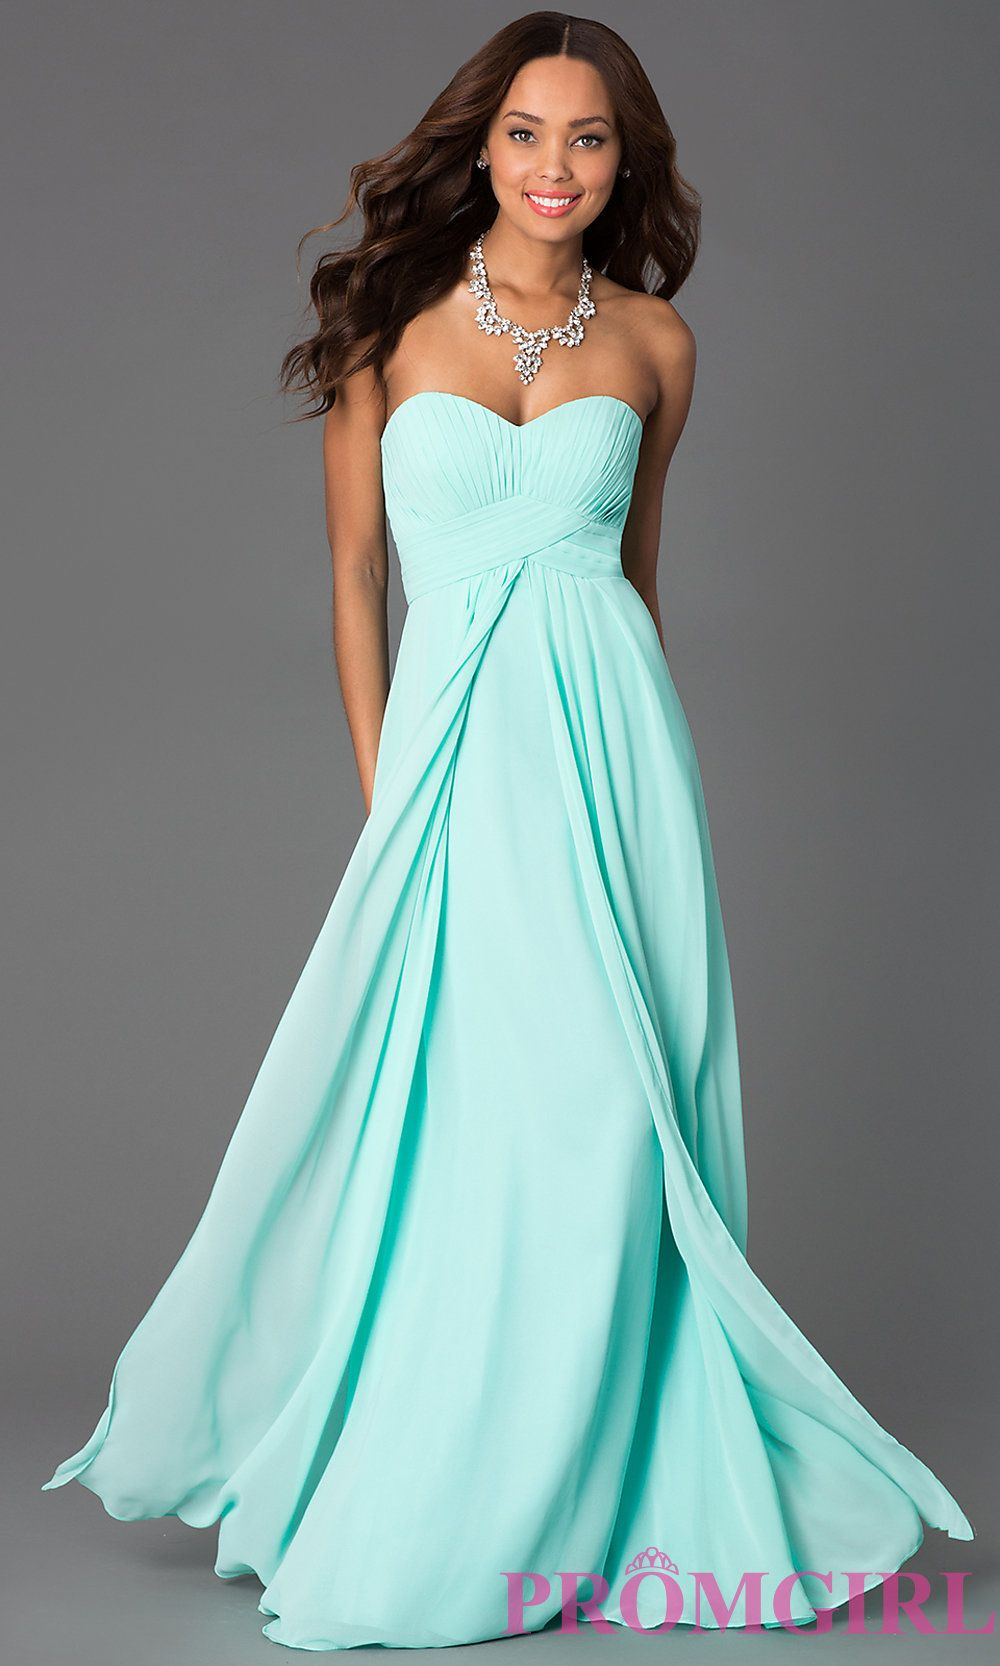 Image of Long Strapless Empire Waist Prom Dress Front Image | The ...